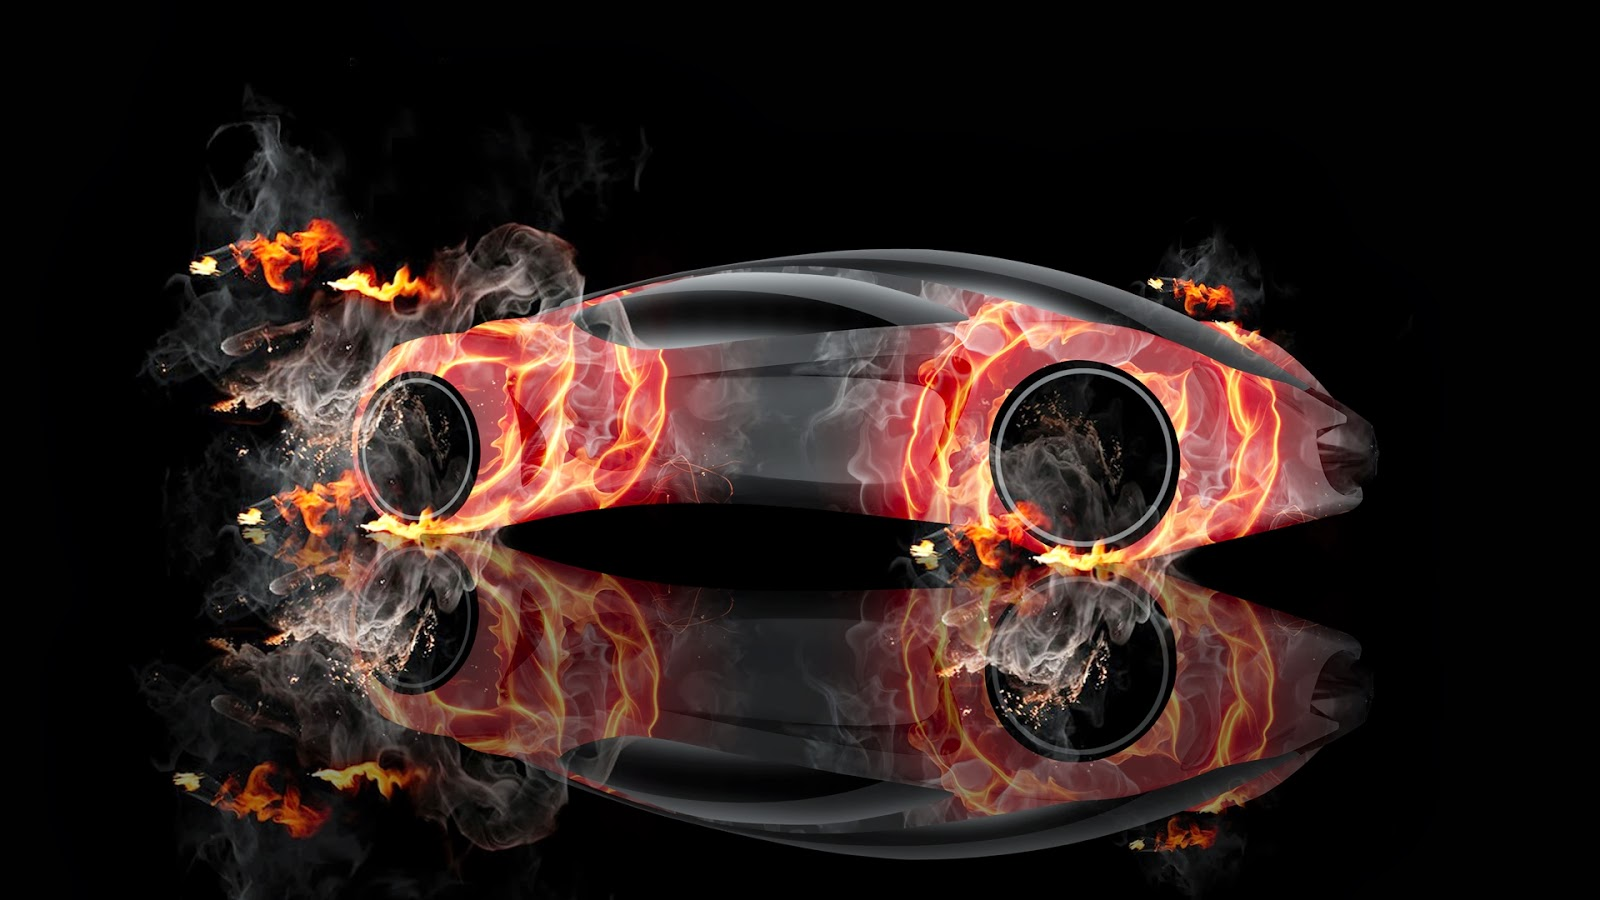 Latest Fire Cars HD Wallpapers, Pictures, And Photos To Add To Your PC,  Mac, Iphone, Ipad, 3d, Or Android Device